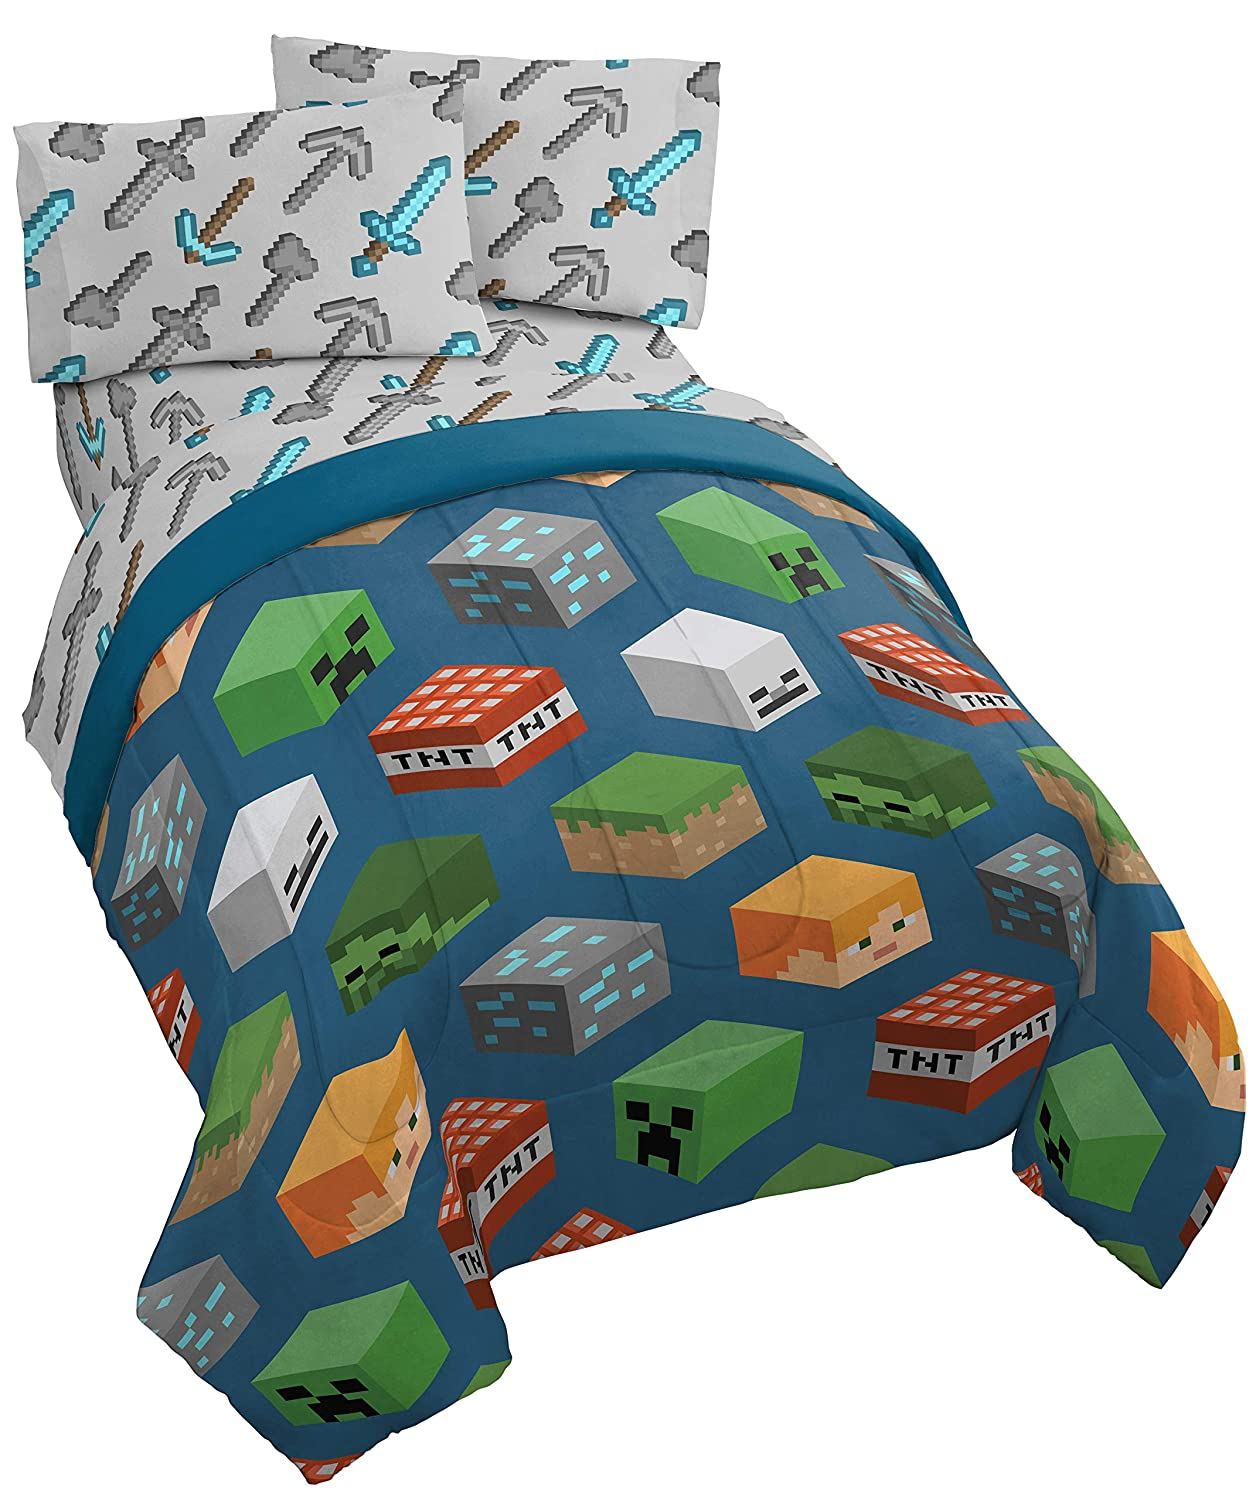 Jay Franco Minecraft Isometric 5 Piece Full Bed Set - Includes Reversible Comforter & Sheet Set - Bedding Features Creeper - Super Soft Fade Resistant Polyester - (Official Minecraft Product)